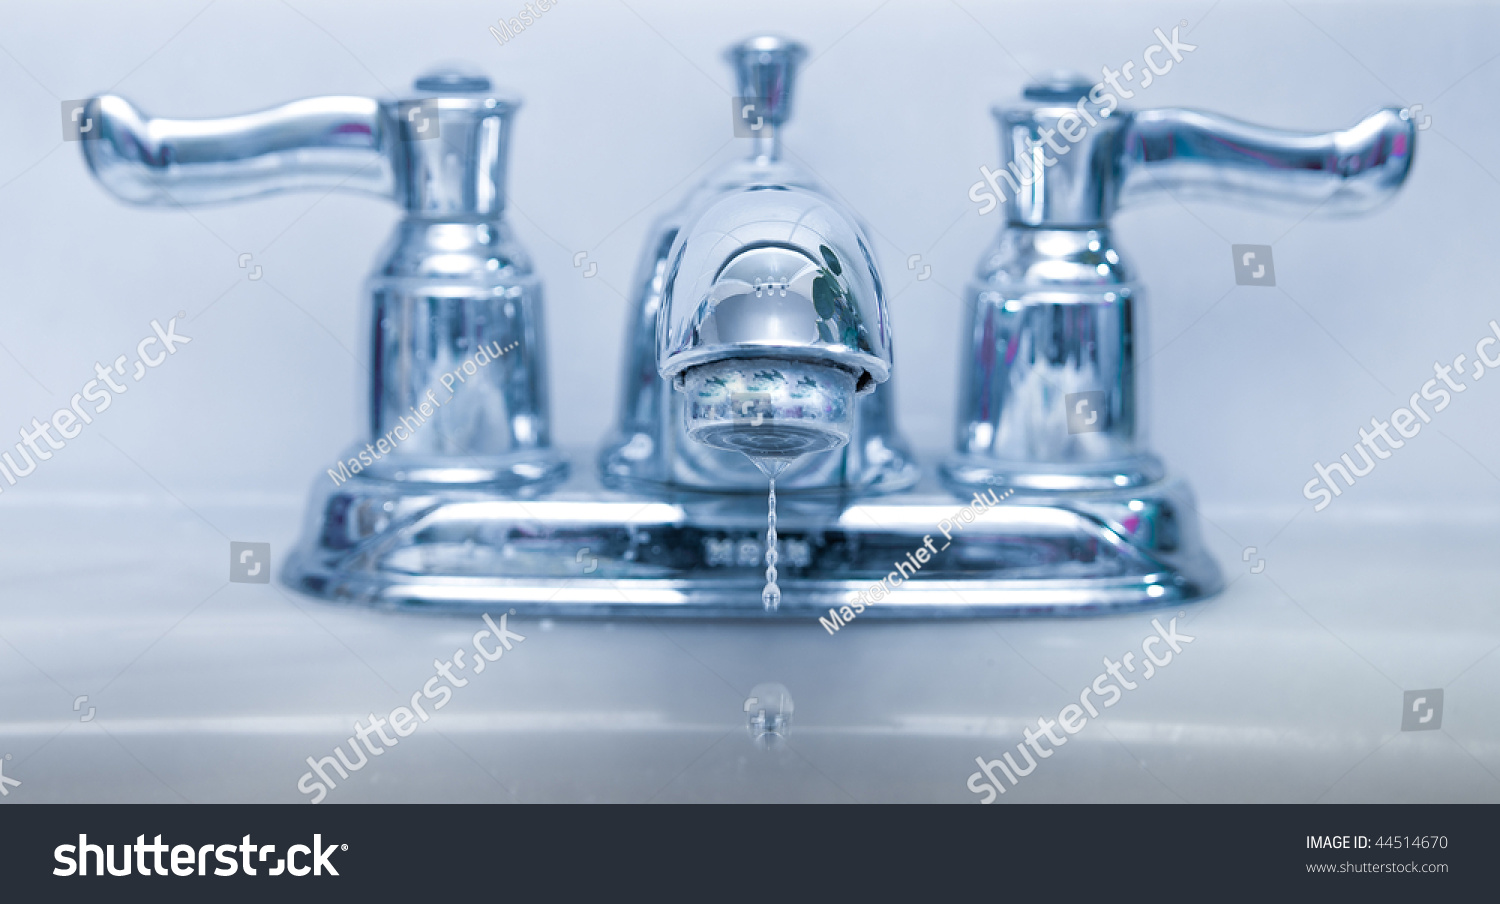 Leaking Faucet Abstract Blue Lighting Water Stock Photo 44514670 ...